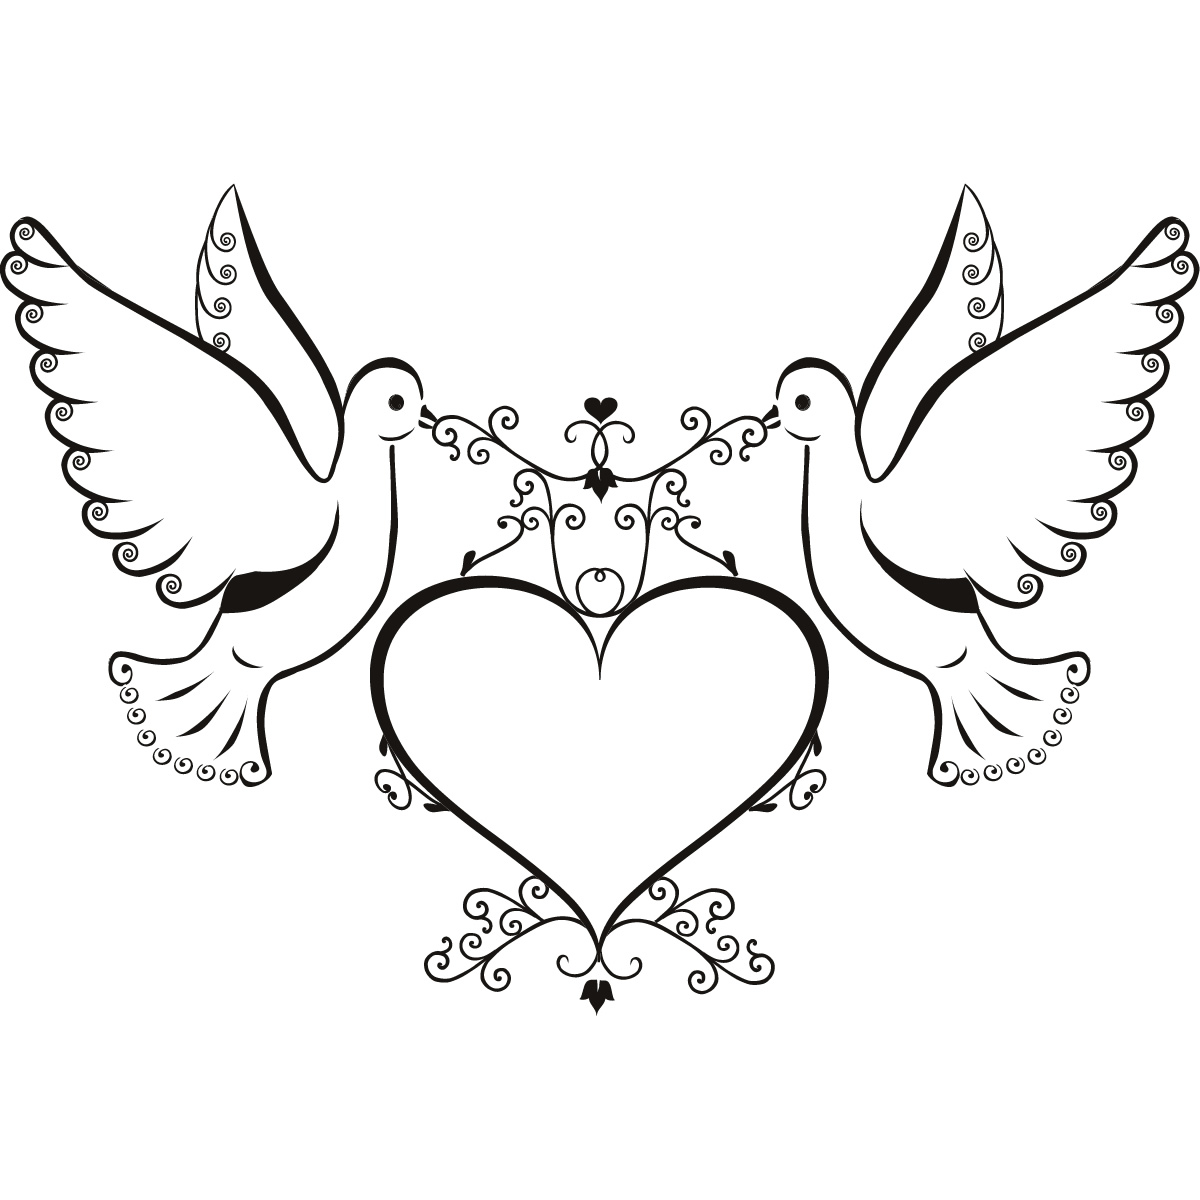 Clipart black and white animals forming hearts clipart royalty free library Free Pictures Of Two Doves, Download Free Clip Art, Free Clip Art on ... clipart royalty free library